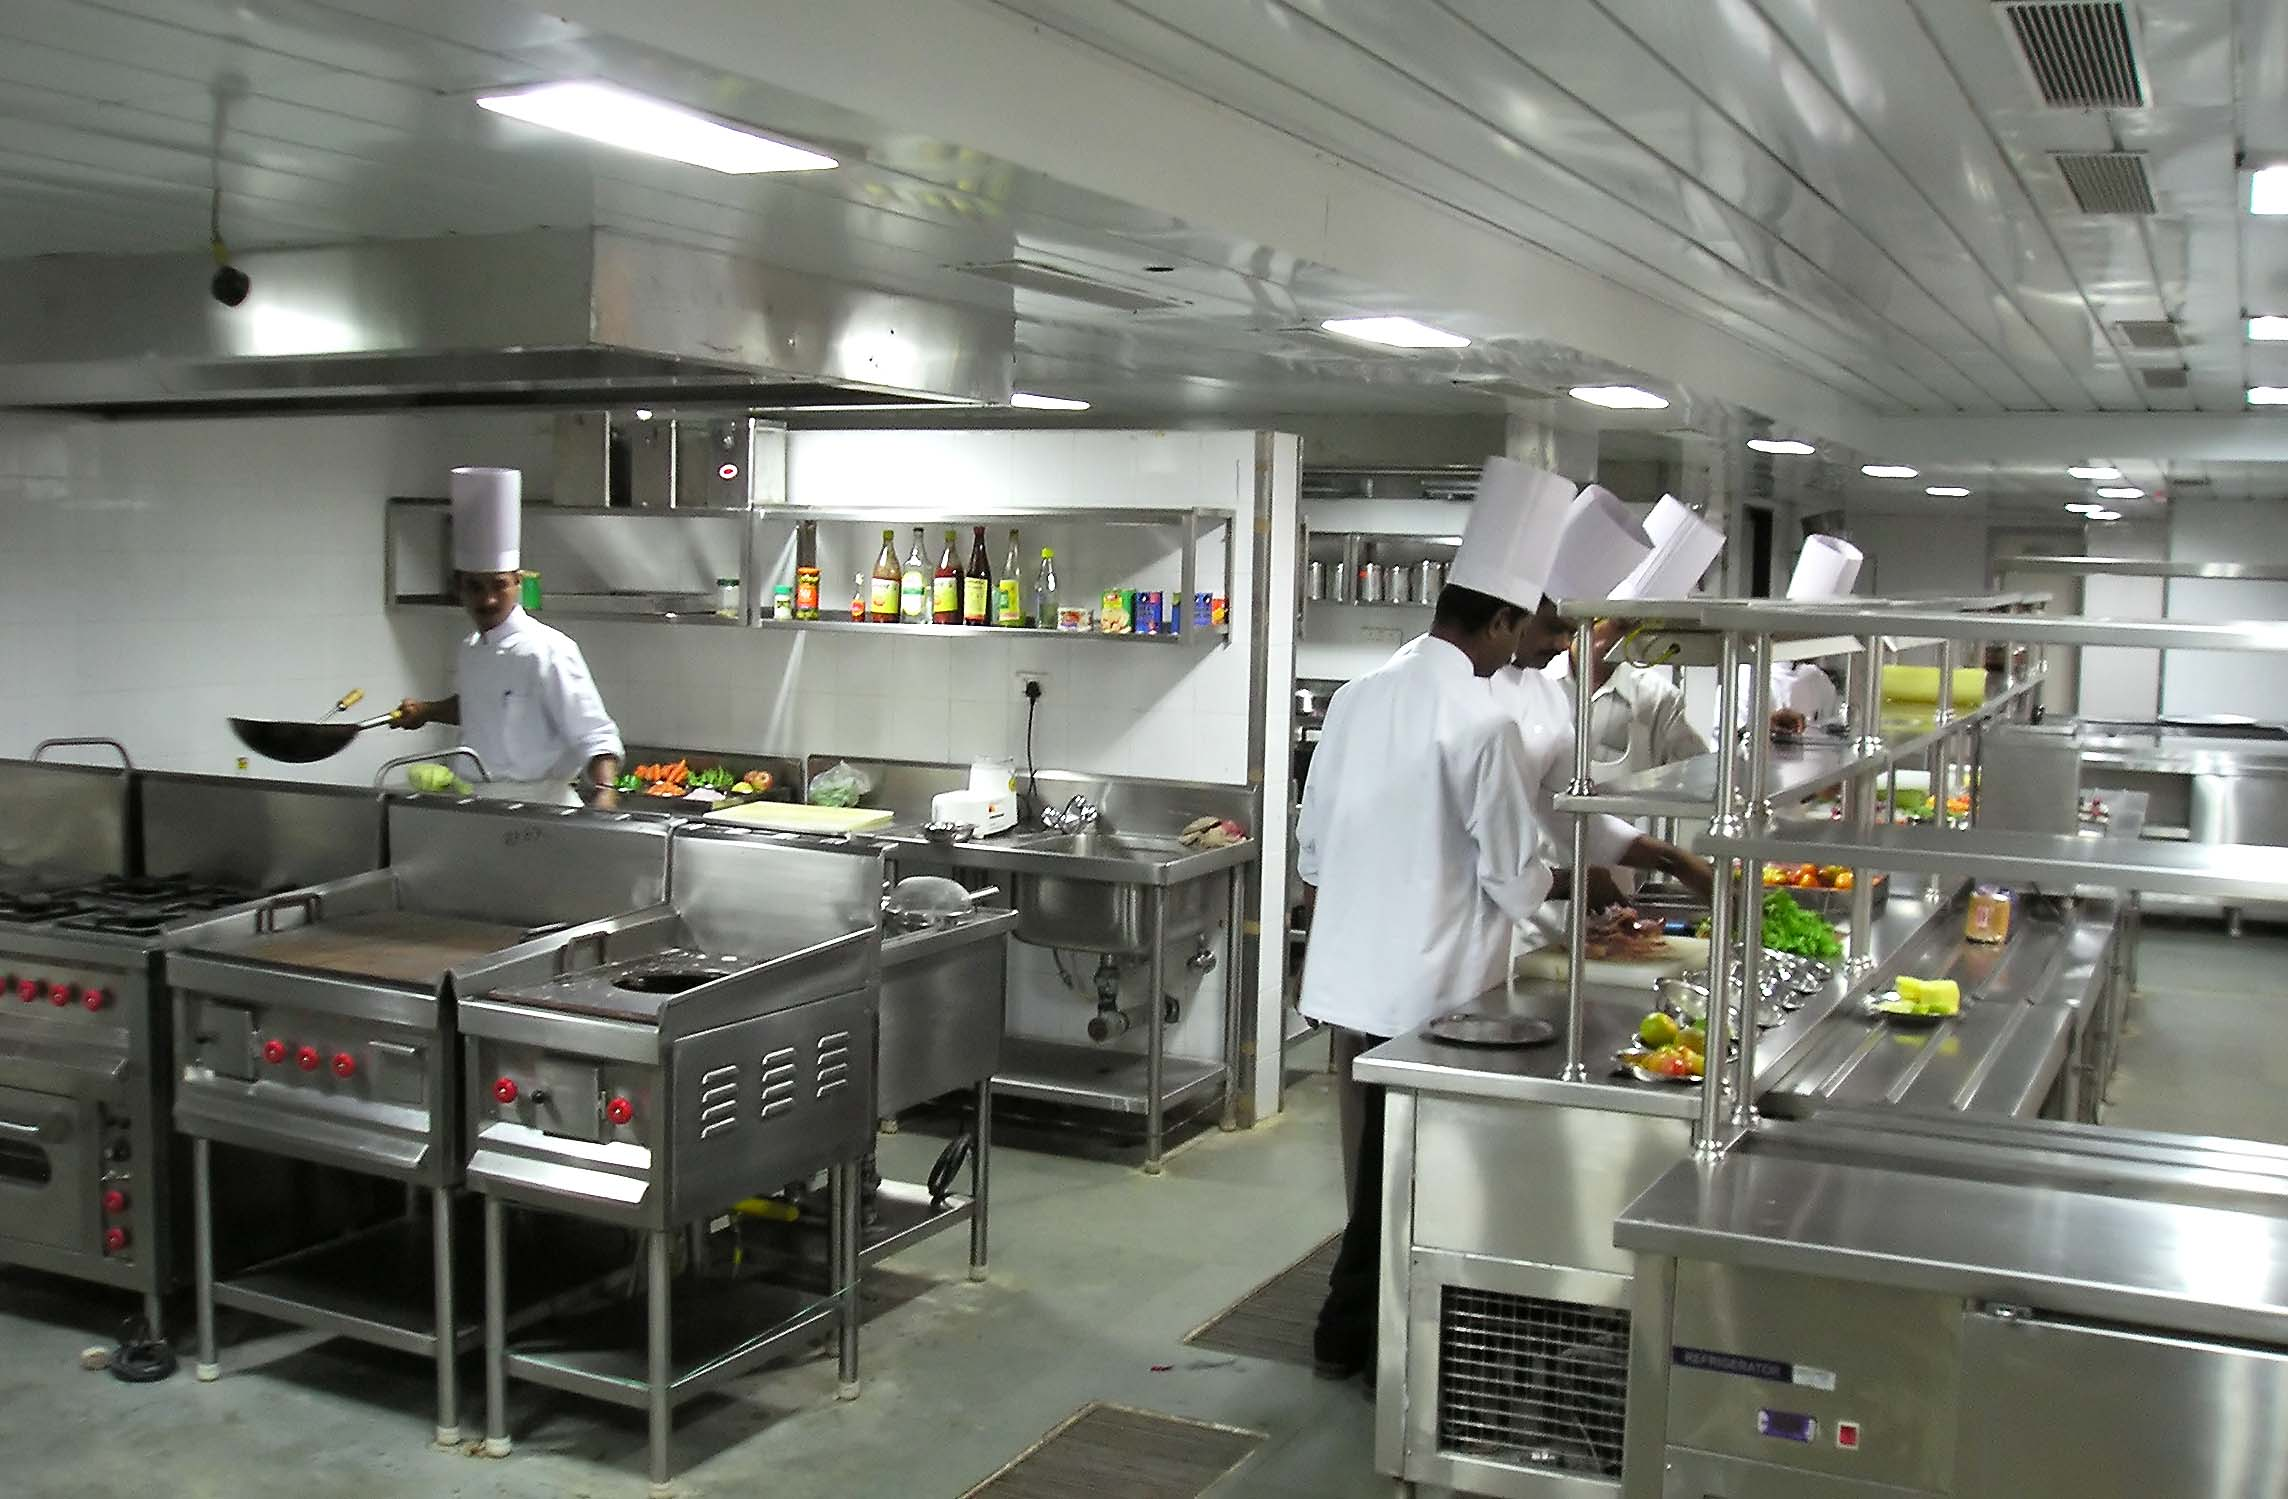 Mcdonalds Kitchen Equipment List All About Restaurant Cooking Equipment A Cook 4 Life